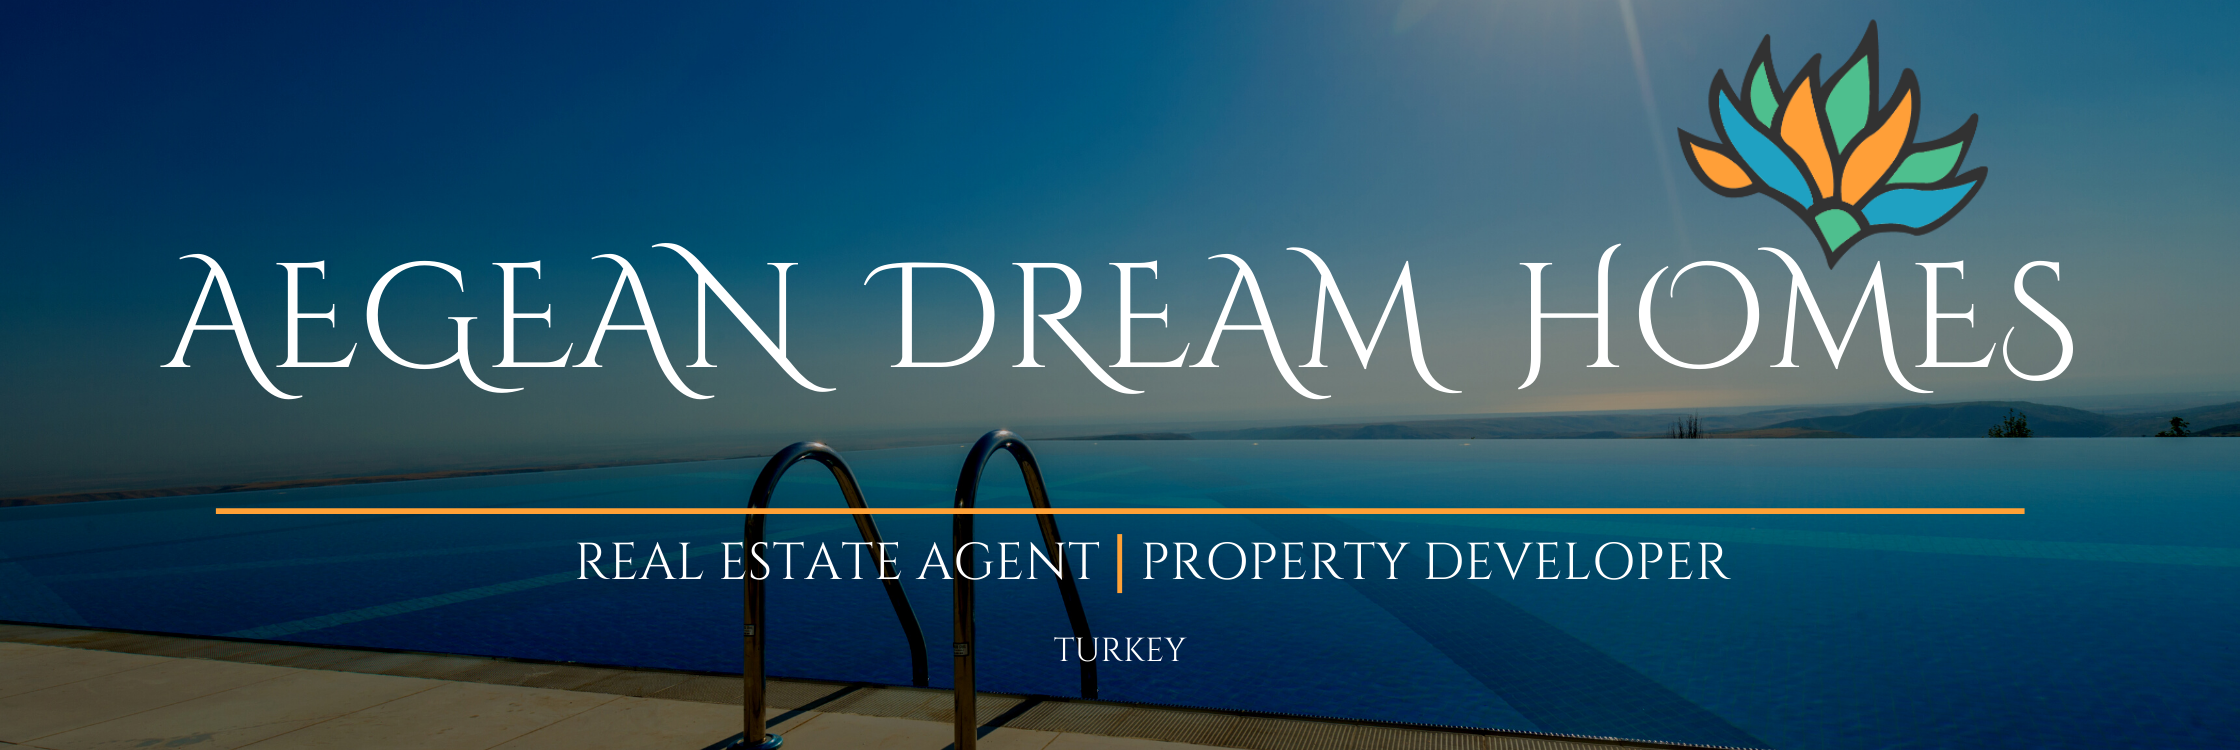 Company banner Reads: Aegean Dream Homes Real estate agent and property developer.